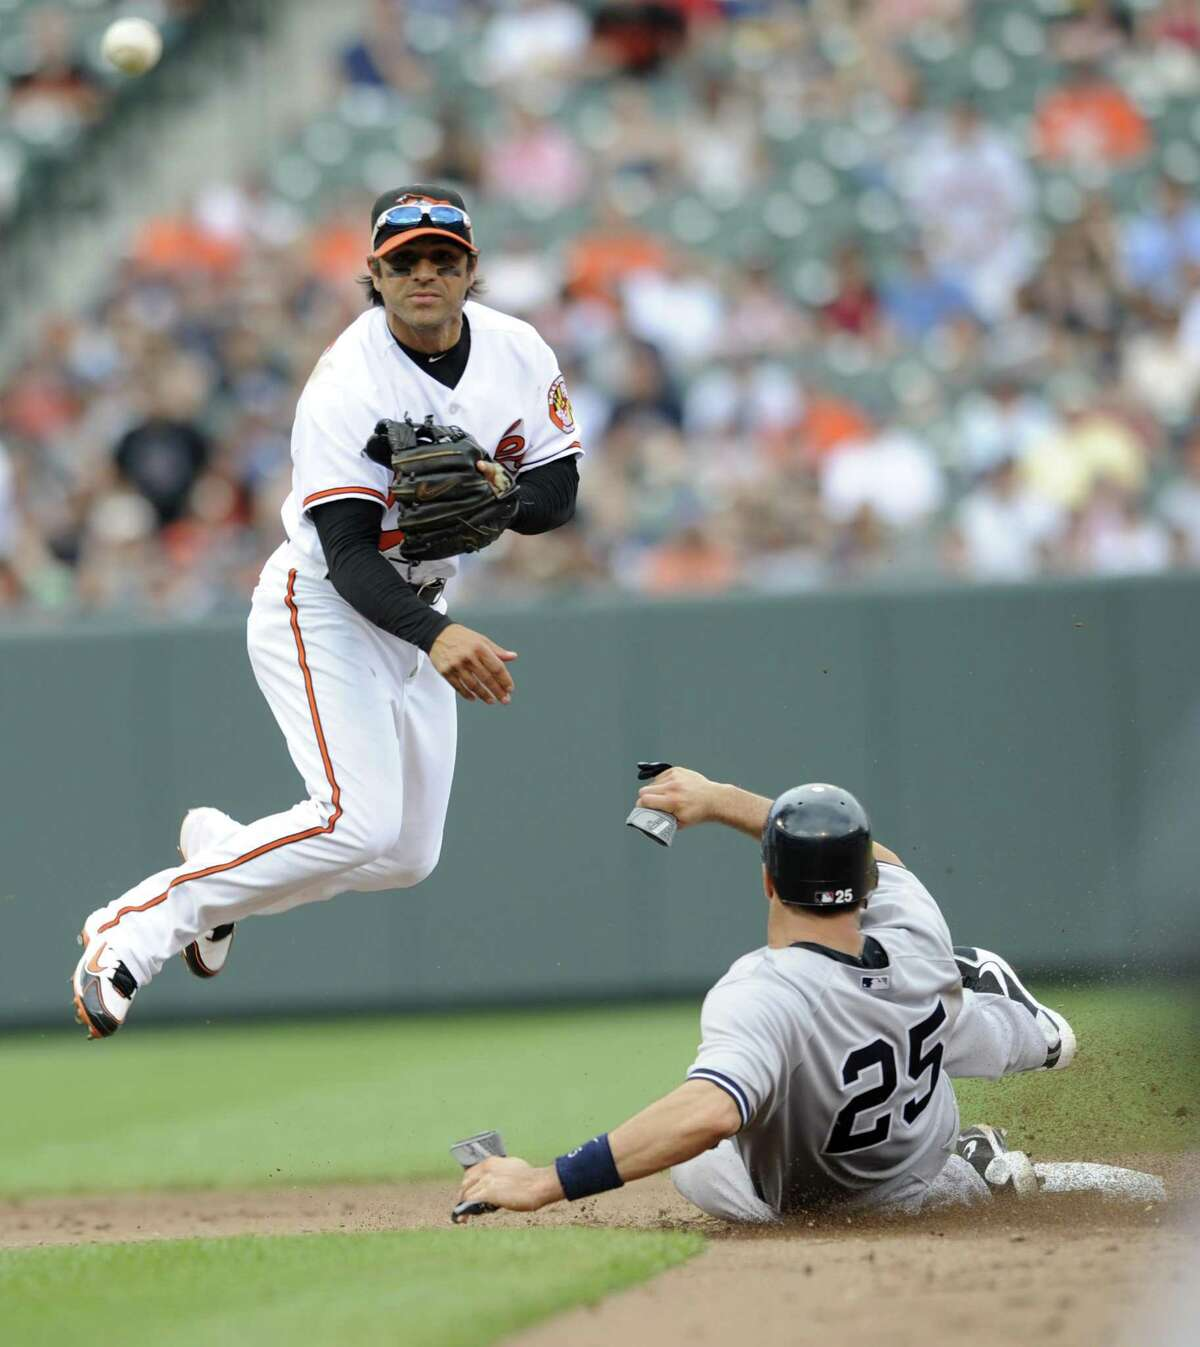 Baltimore Orioles second baseman Brian Roberts throws to first as New York Yankees' Mark Teixeira is out on a ground ball hit by Alex Rodriguez during the fifth inning of a baseball game, Sunday, April 24, 2011, in Baltimore. Rodriguez was safe at first. (AP Photo/Gail Burton)